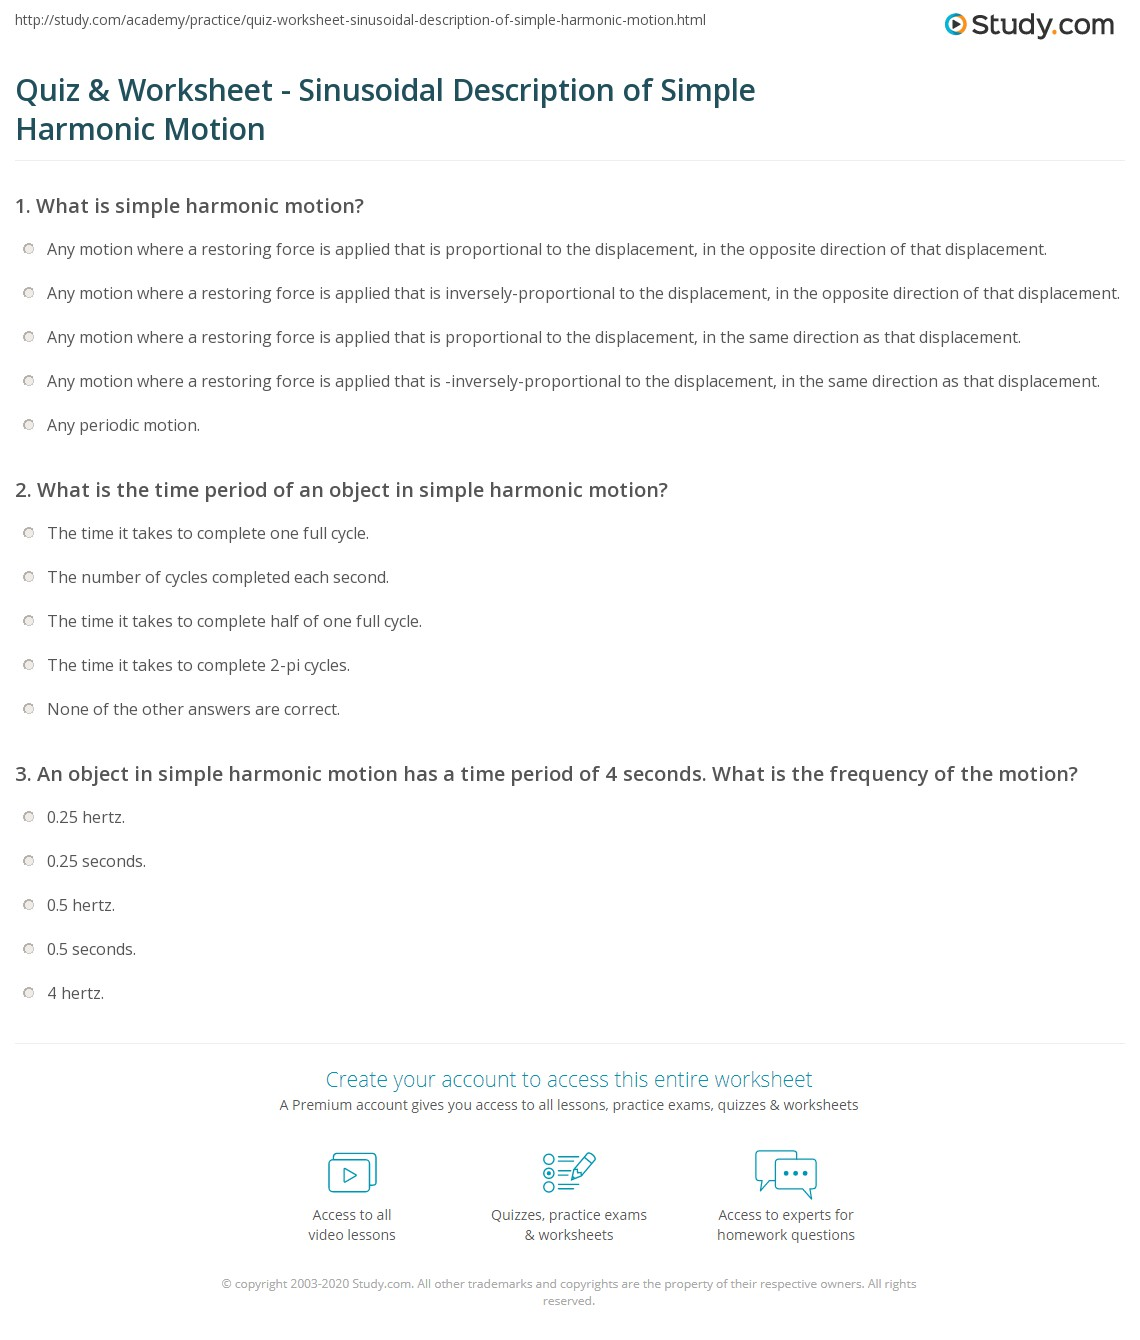 Worksheets Simple Harmonic Motion Worksheet quiz worksheet sinusoidal description of simple harmonic motion print the worksheet